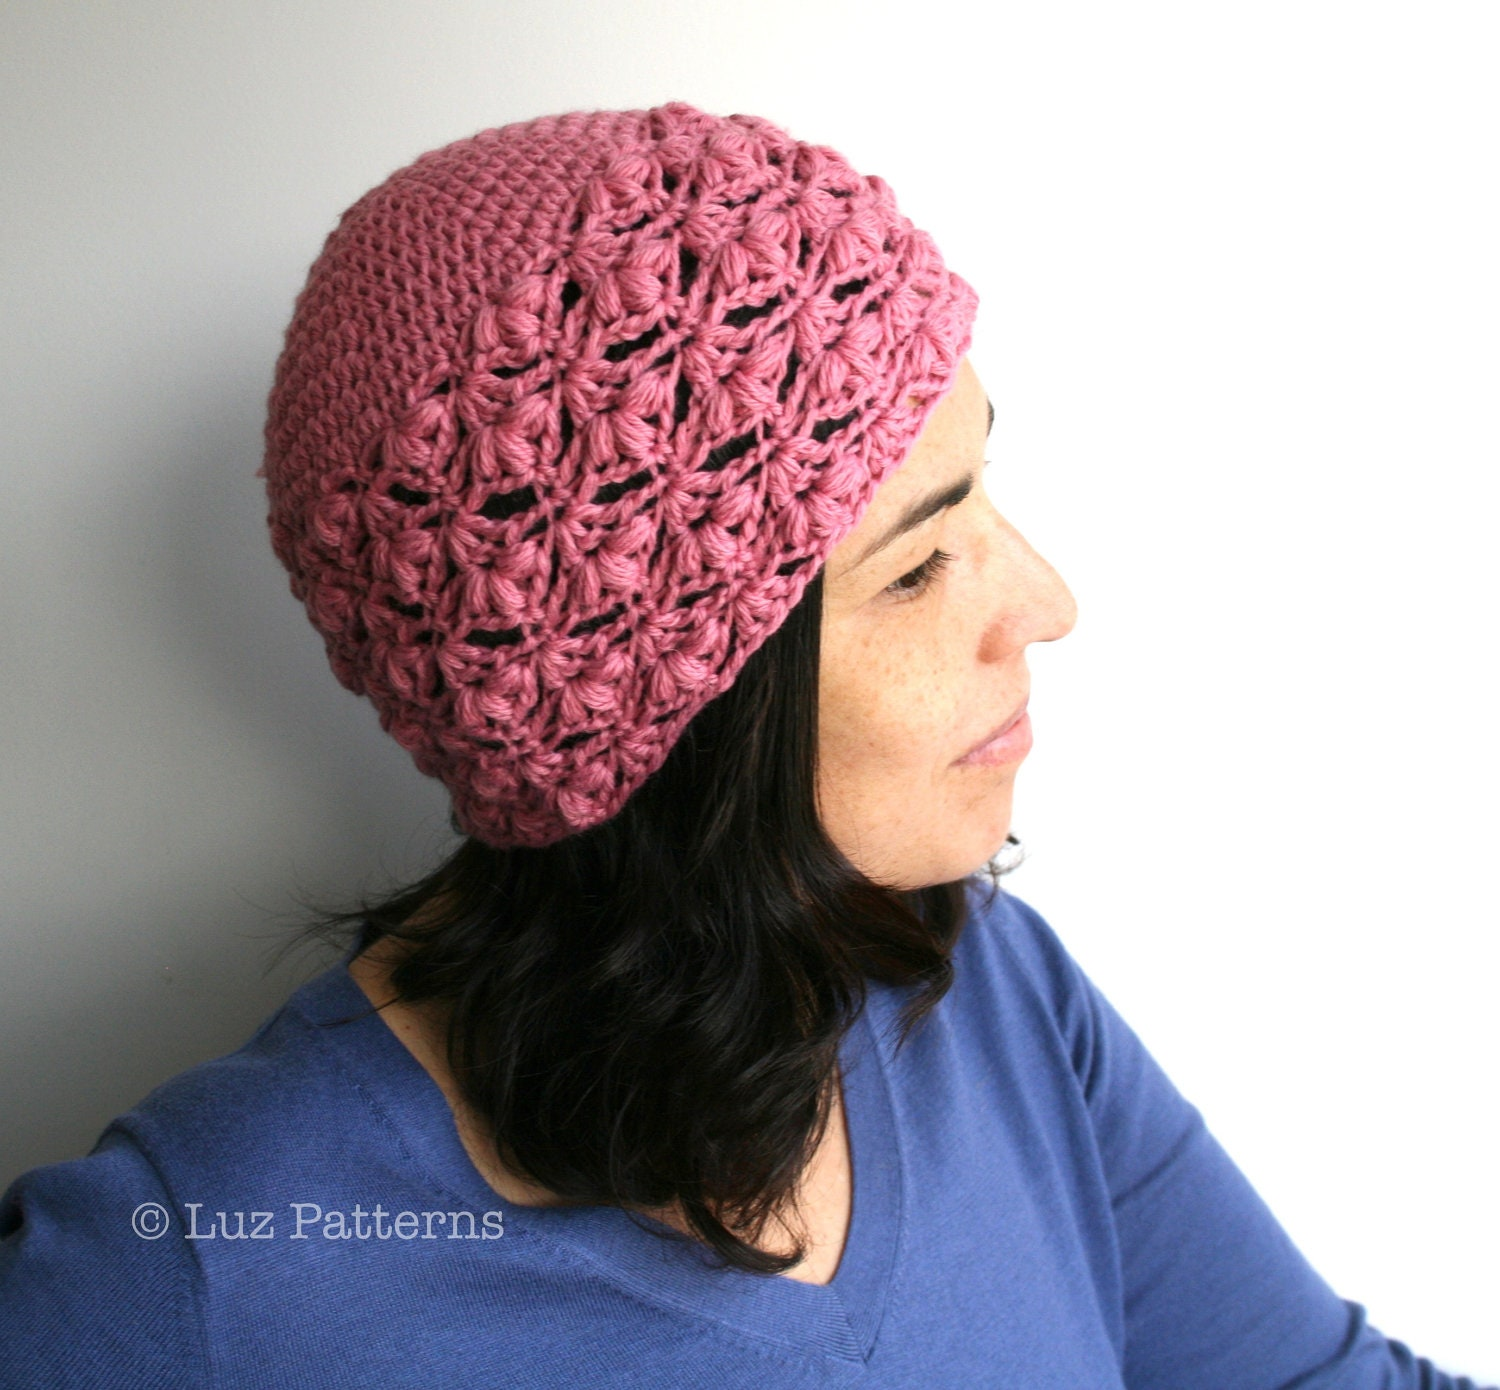 Free Crochet Pattern For Ladies Beanie Hat : Crochet hat PATTERN INSTANT DOWNLOAD crochet women beanie